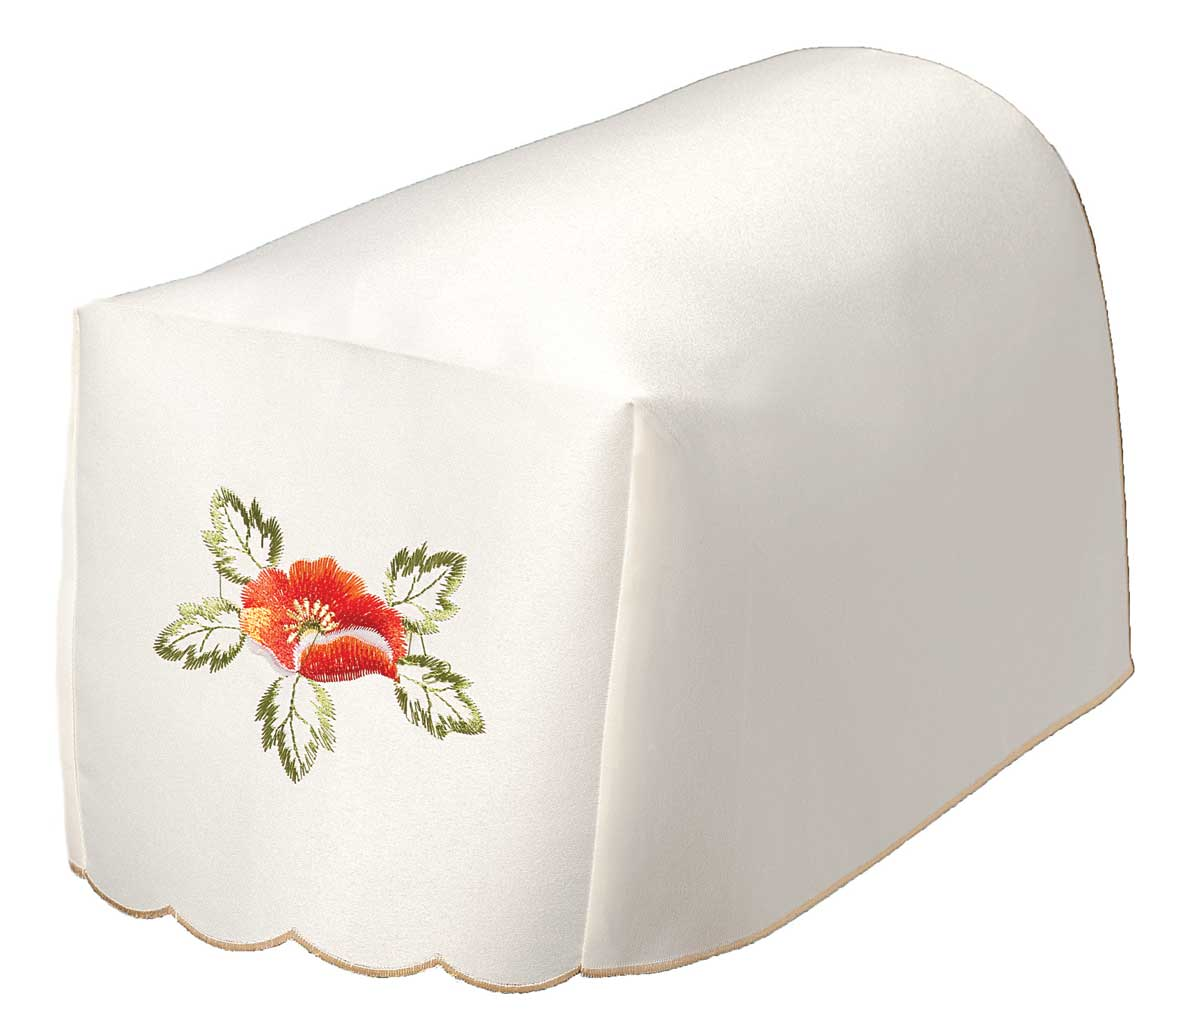 FIONA Embroidered Red Poppy Chair Arm Covers